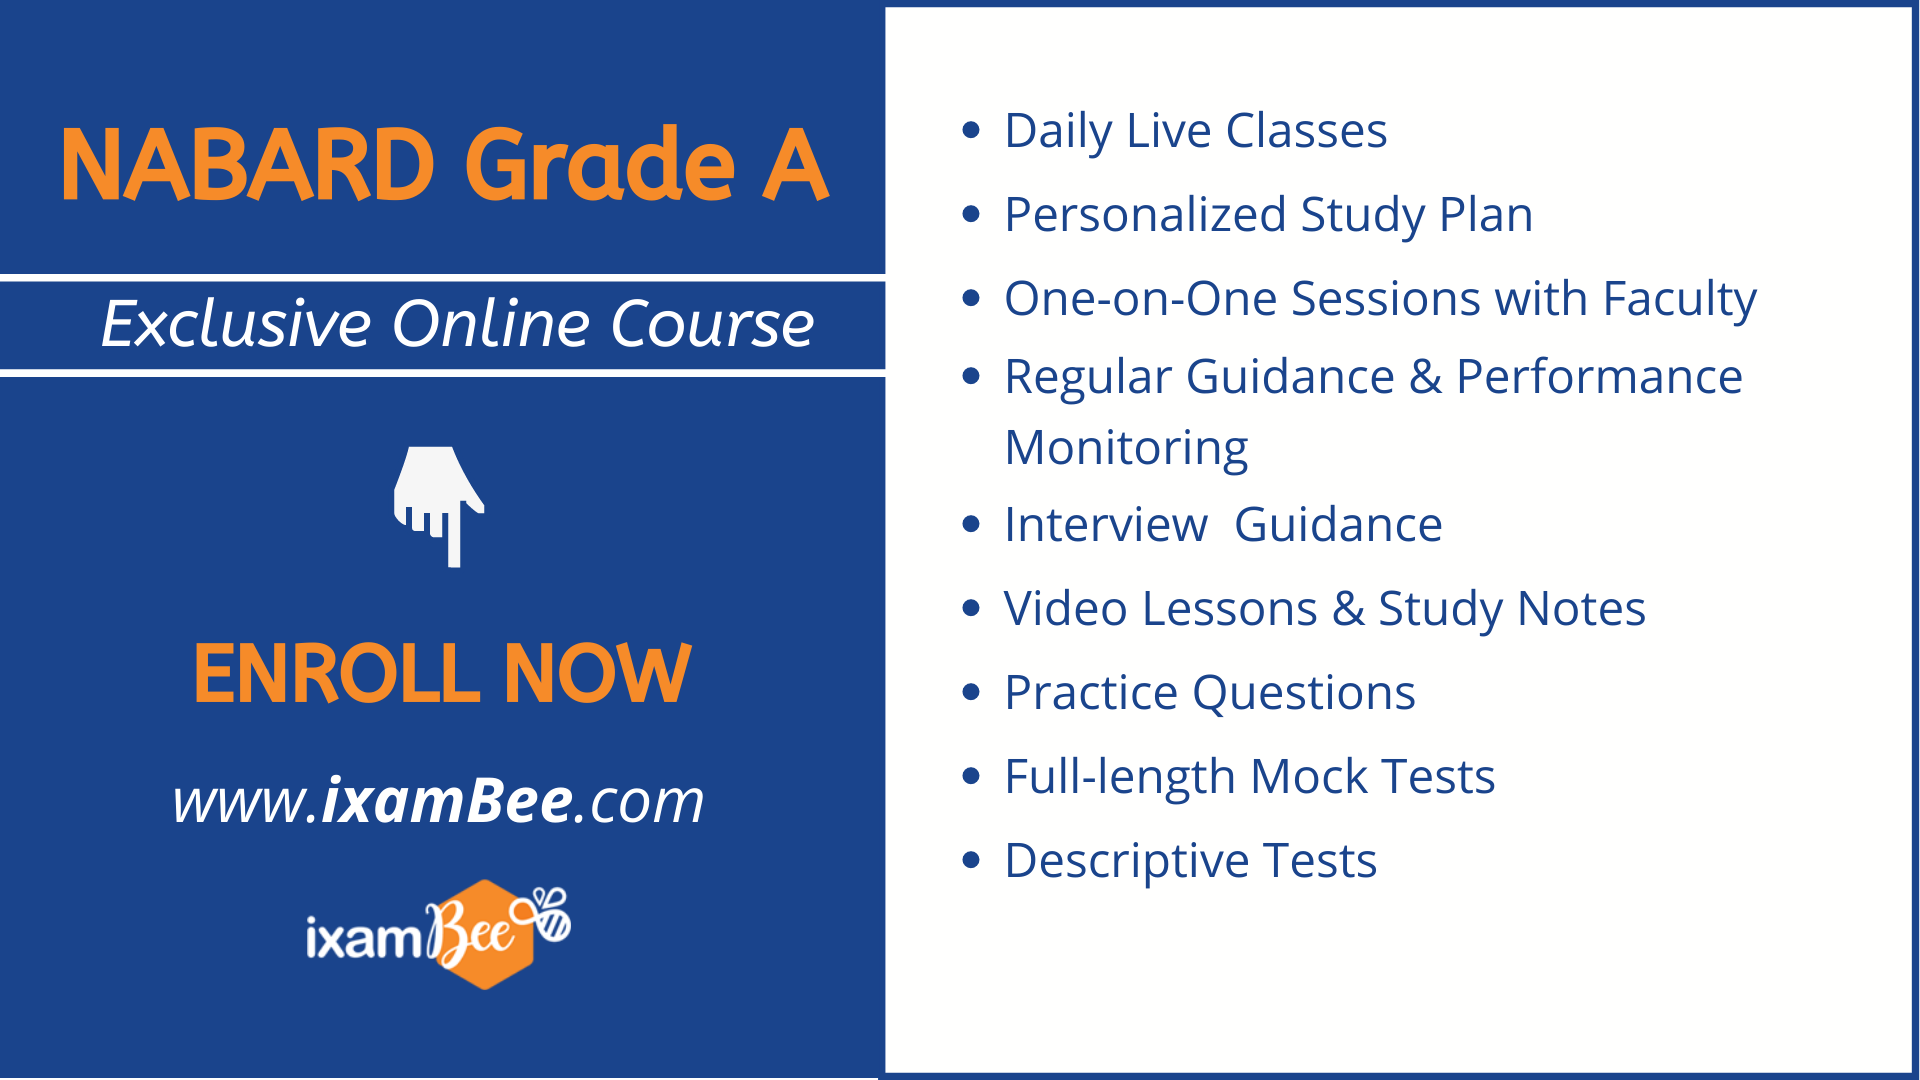 NABARD Grade A Exclusive Online Course